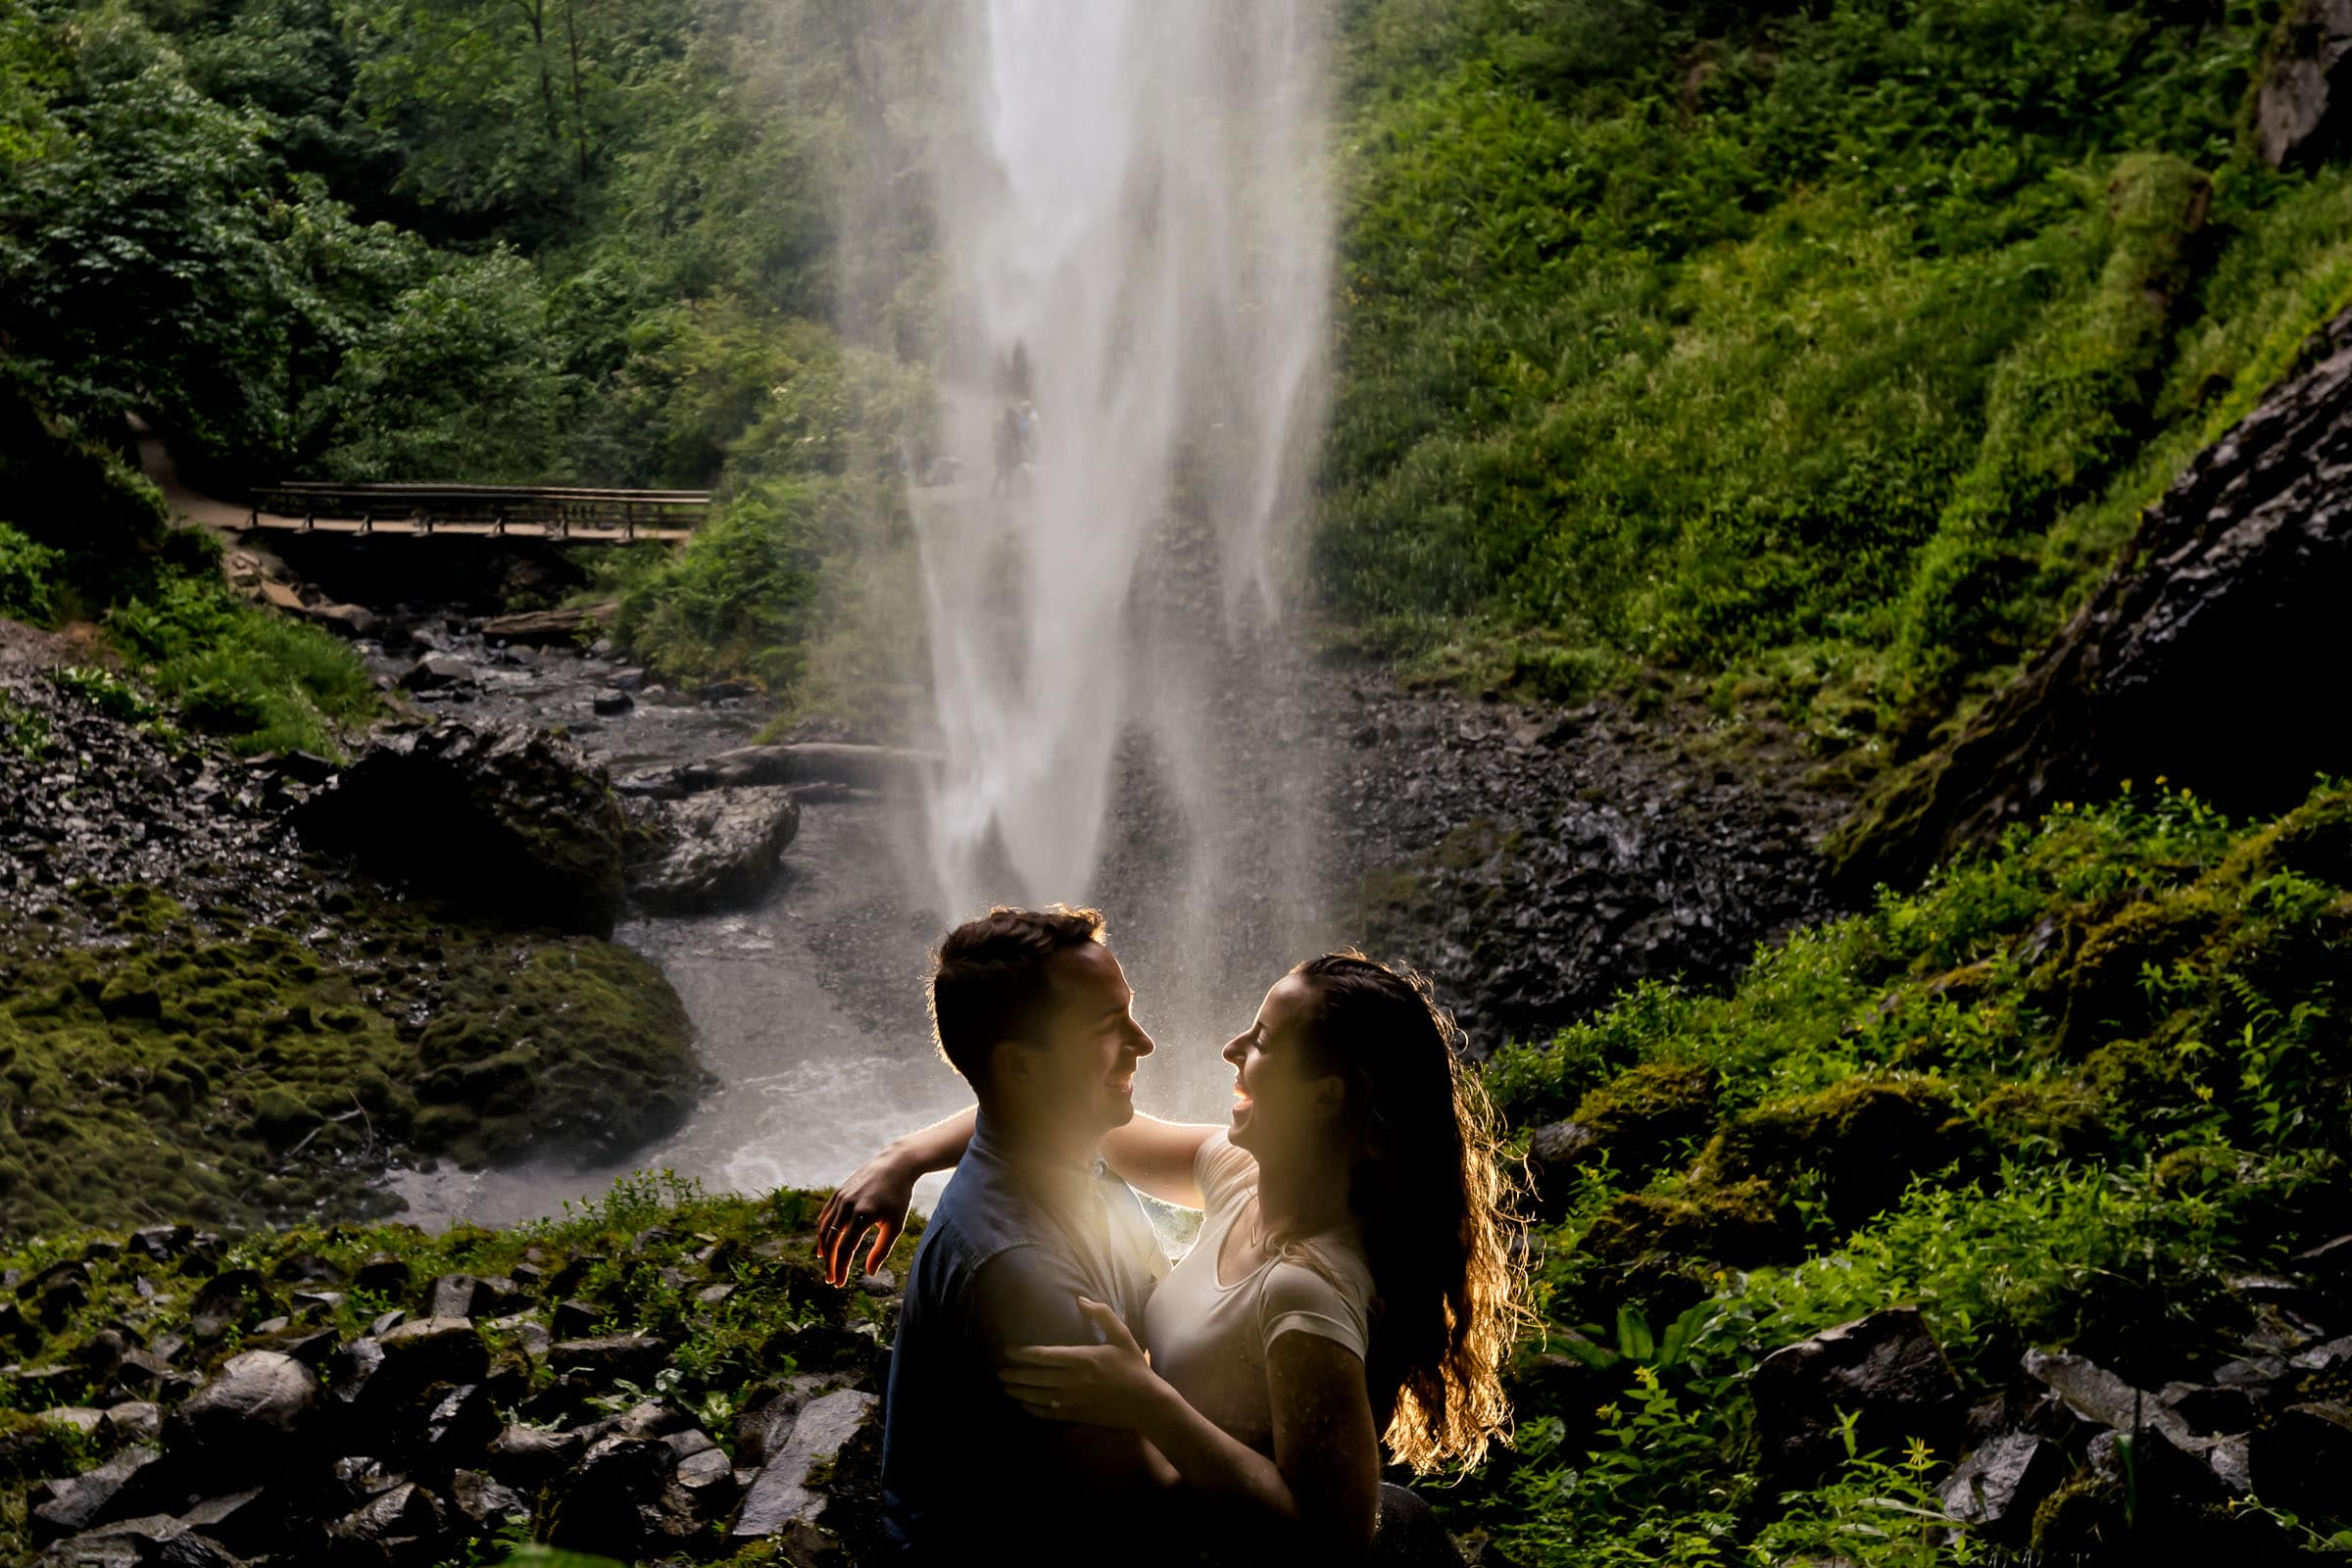 Stunning photo of a couple under Latourell Falls during their engagement photos moments after their real proposal moment. Best Engagement Photography Locations in Portland. Latourell Falls Engagement Photos by Jos and Tree, portland wedding photographers.